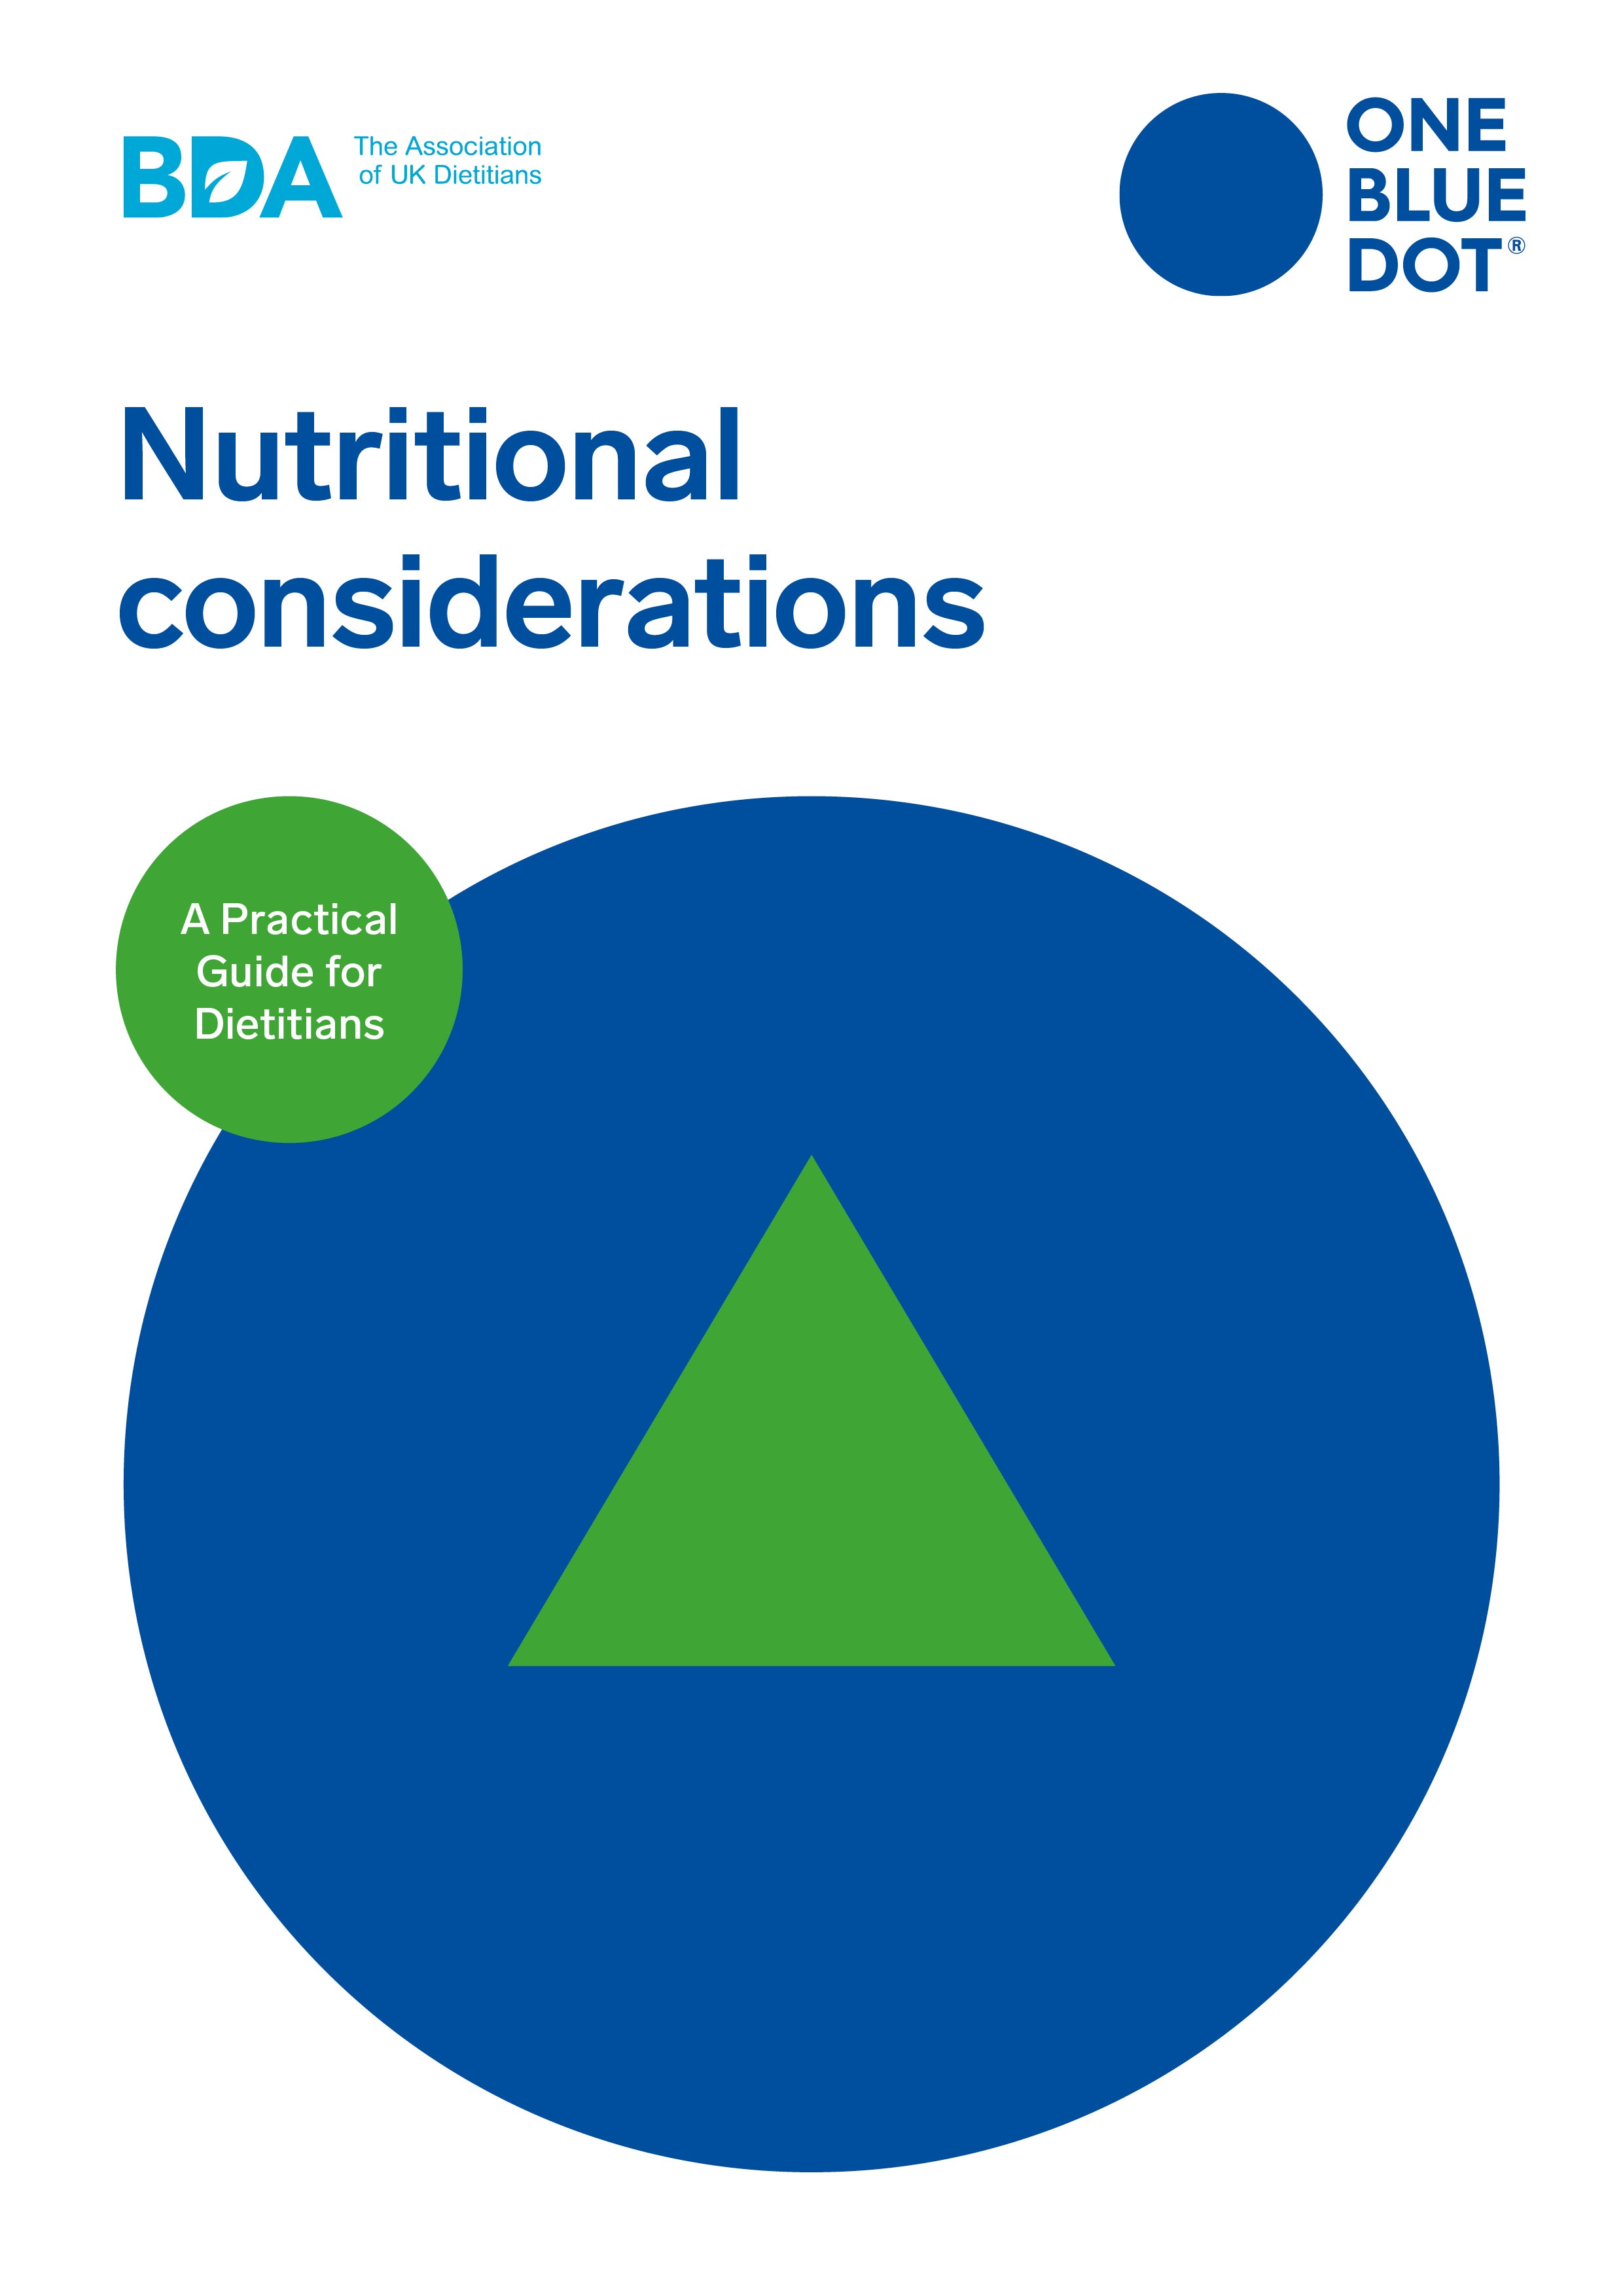 One Blue Dot: Nutritional Considerations